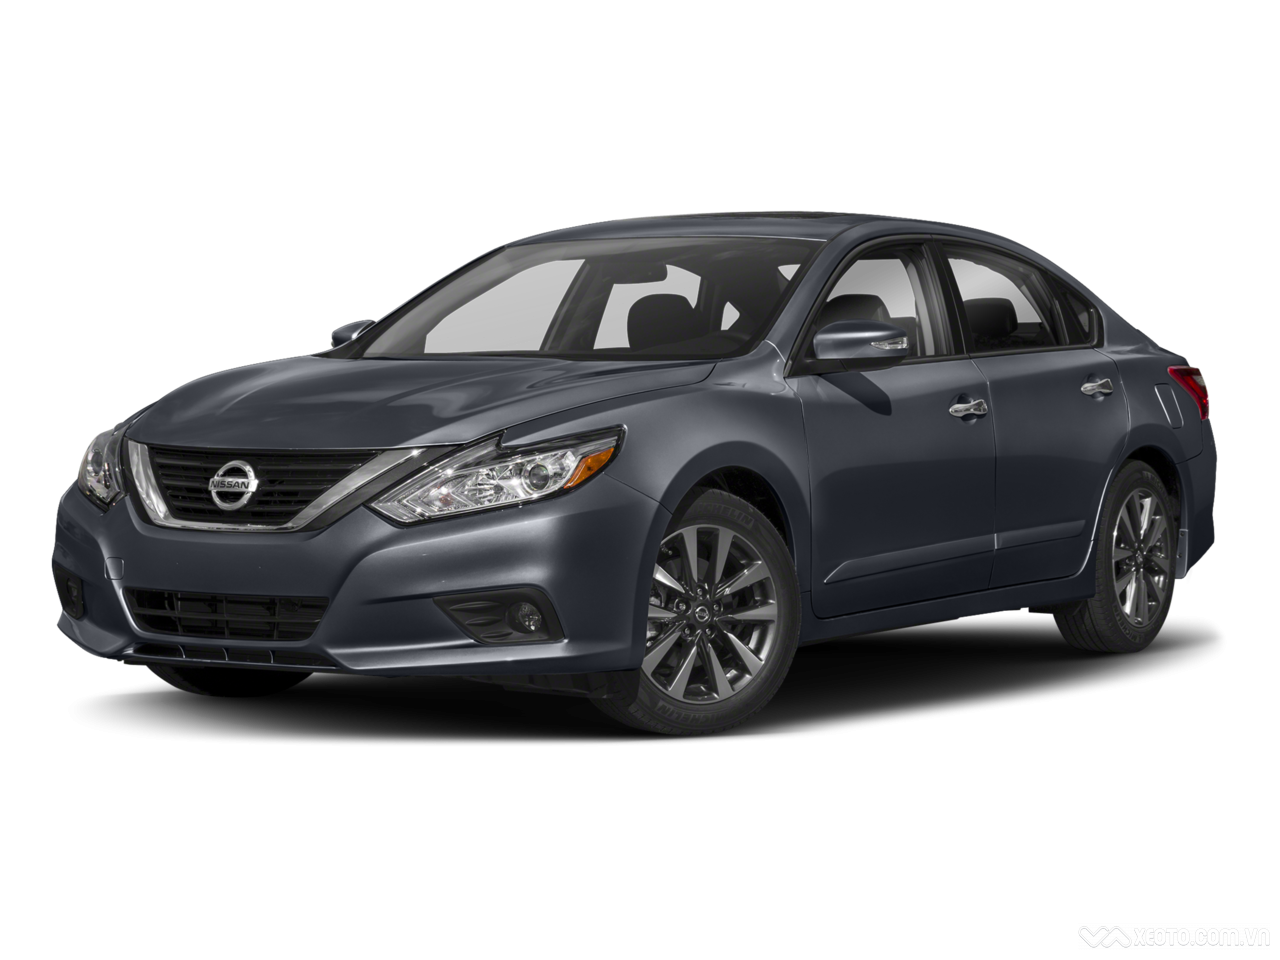 Xe Nissan Altima 2019